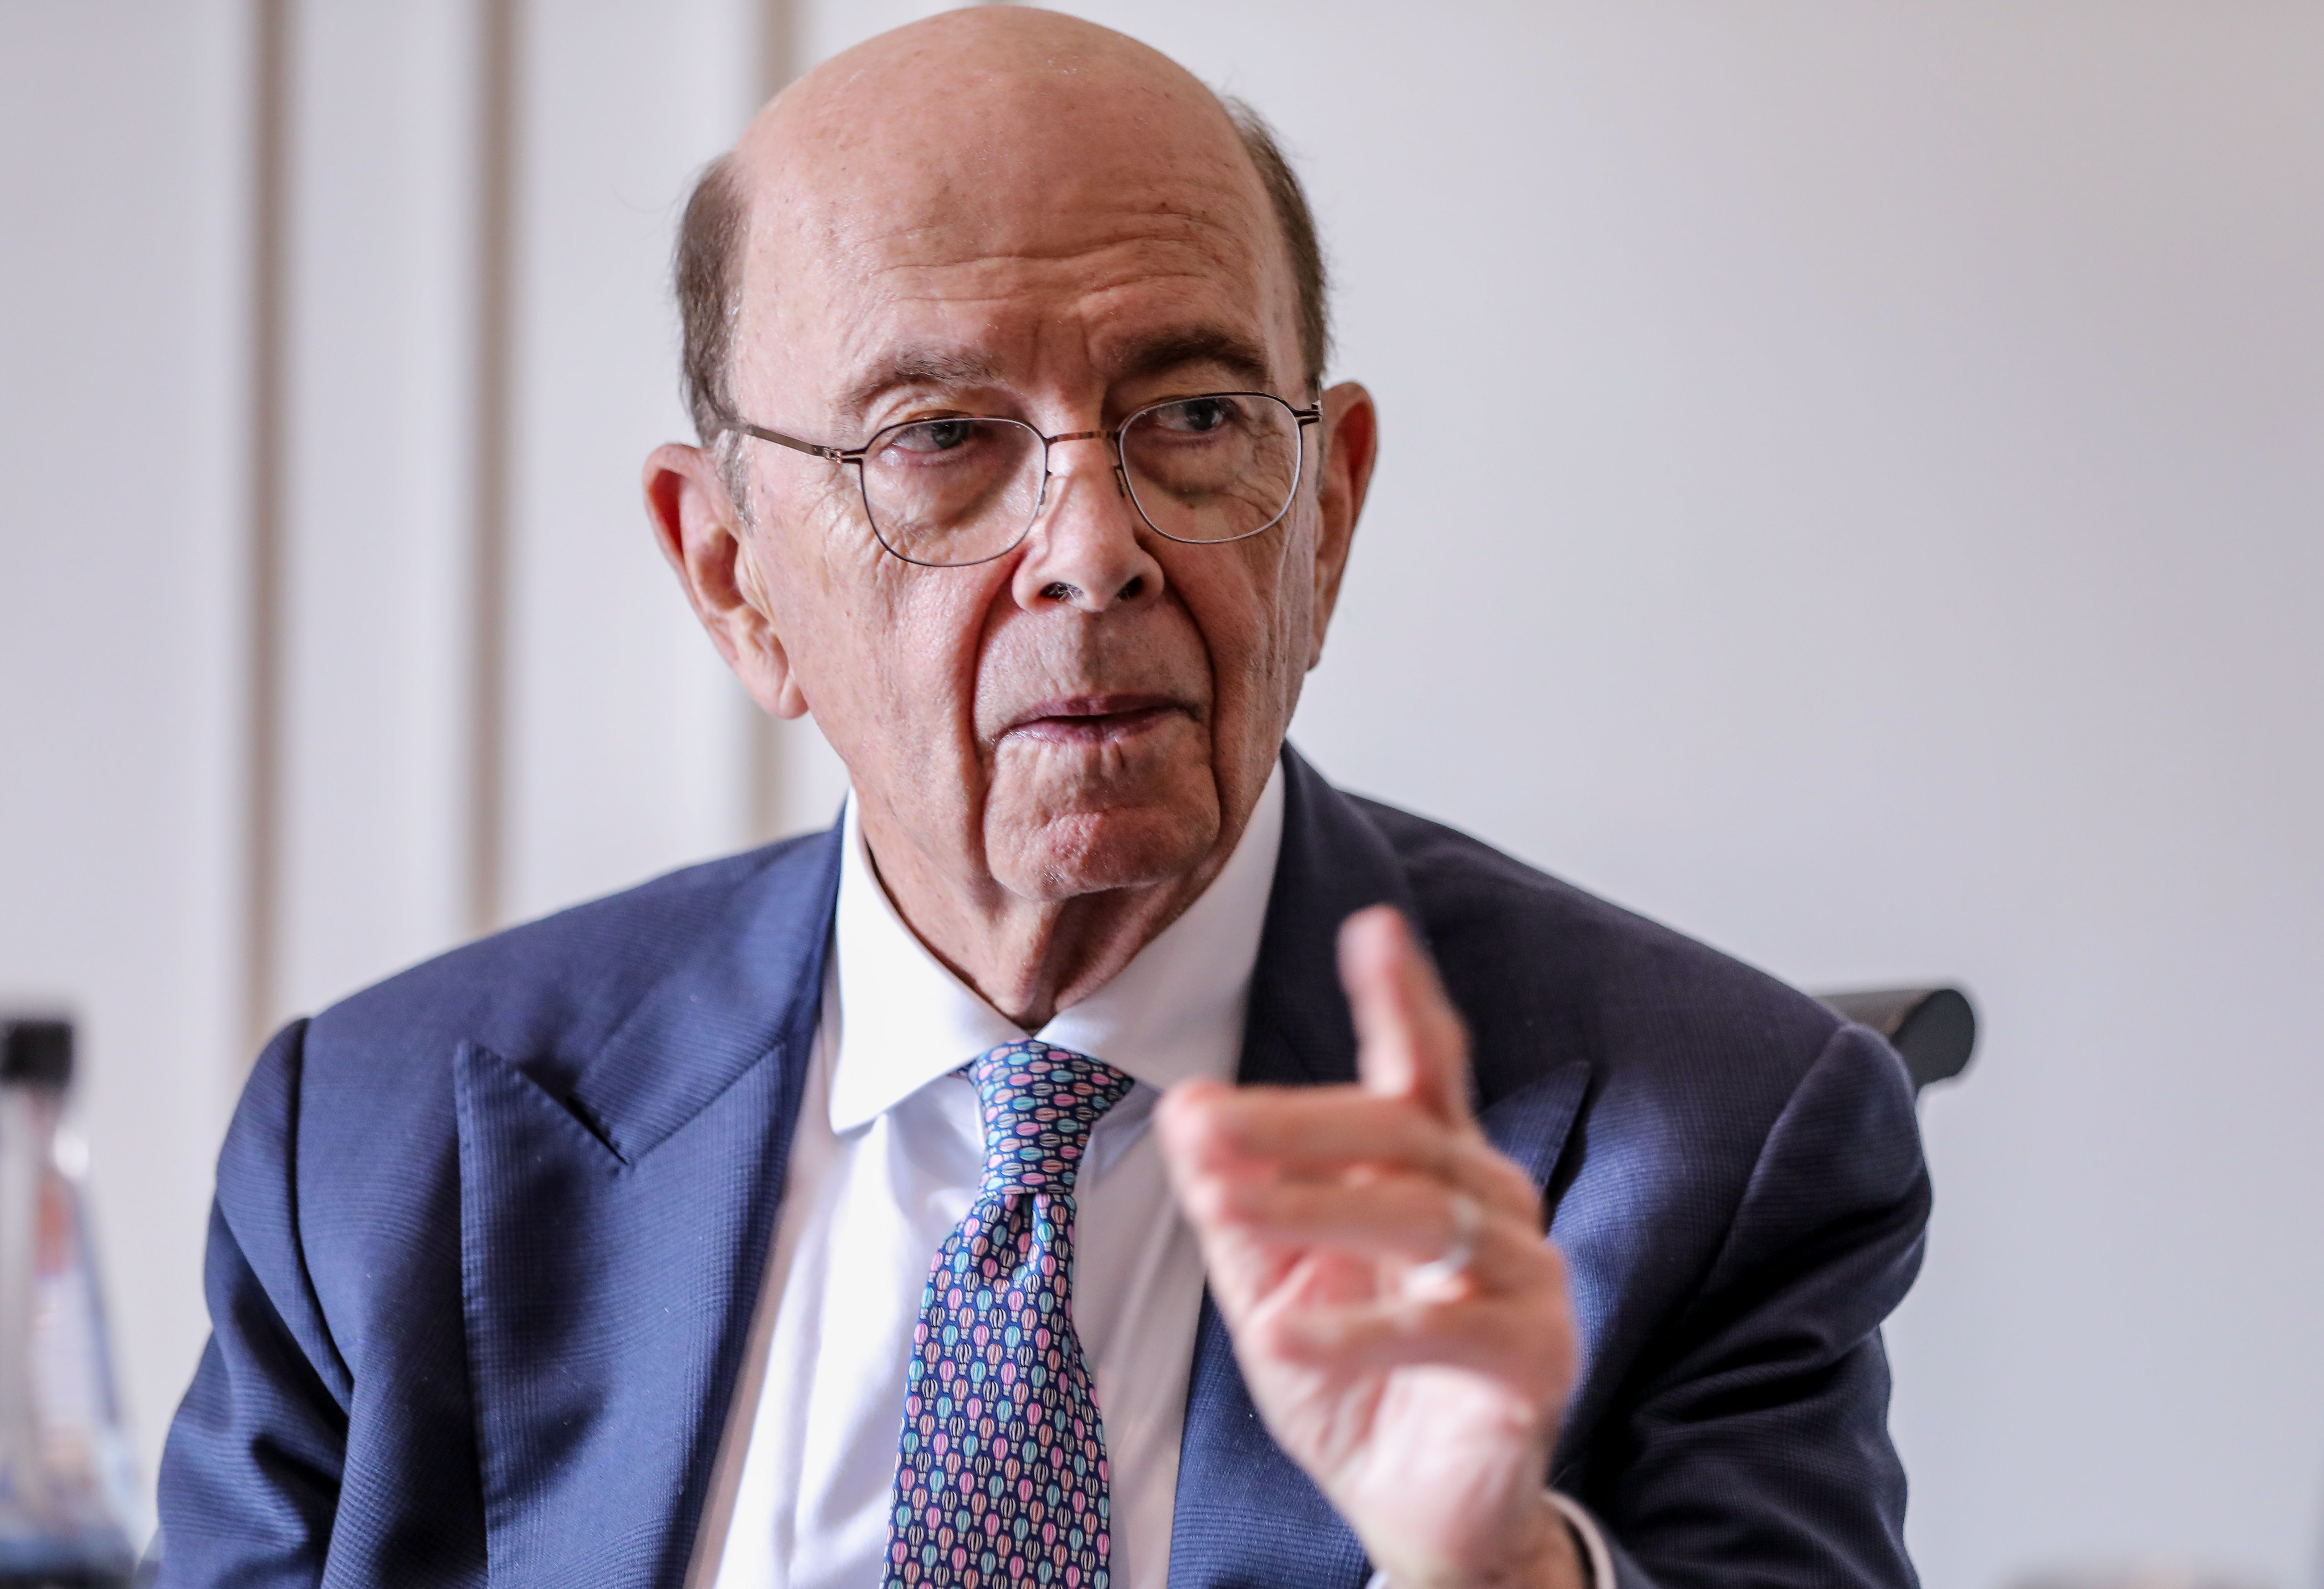 Agriculture, energy, defense purchases would help reduce US trade deficit with Vietnam: Wilbur Ross